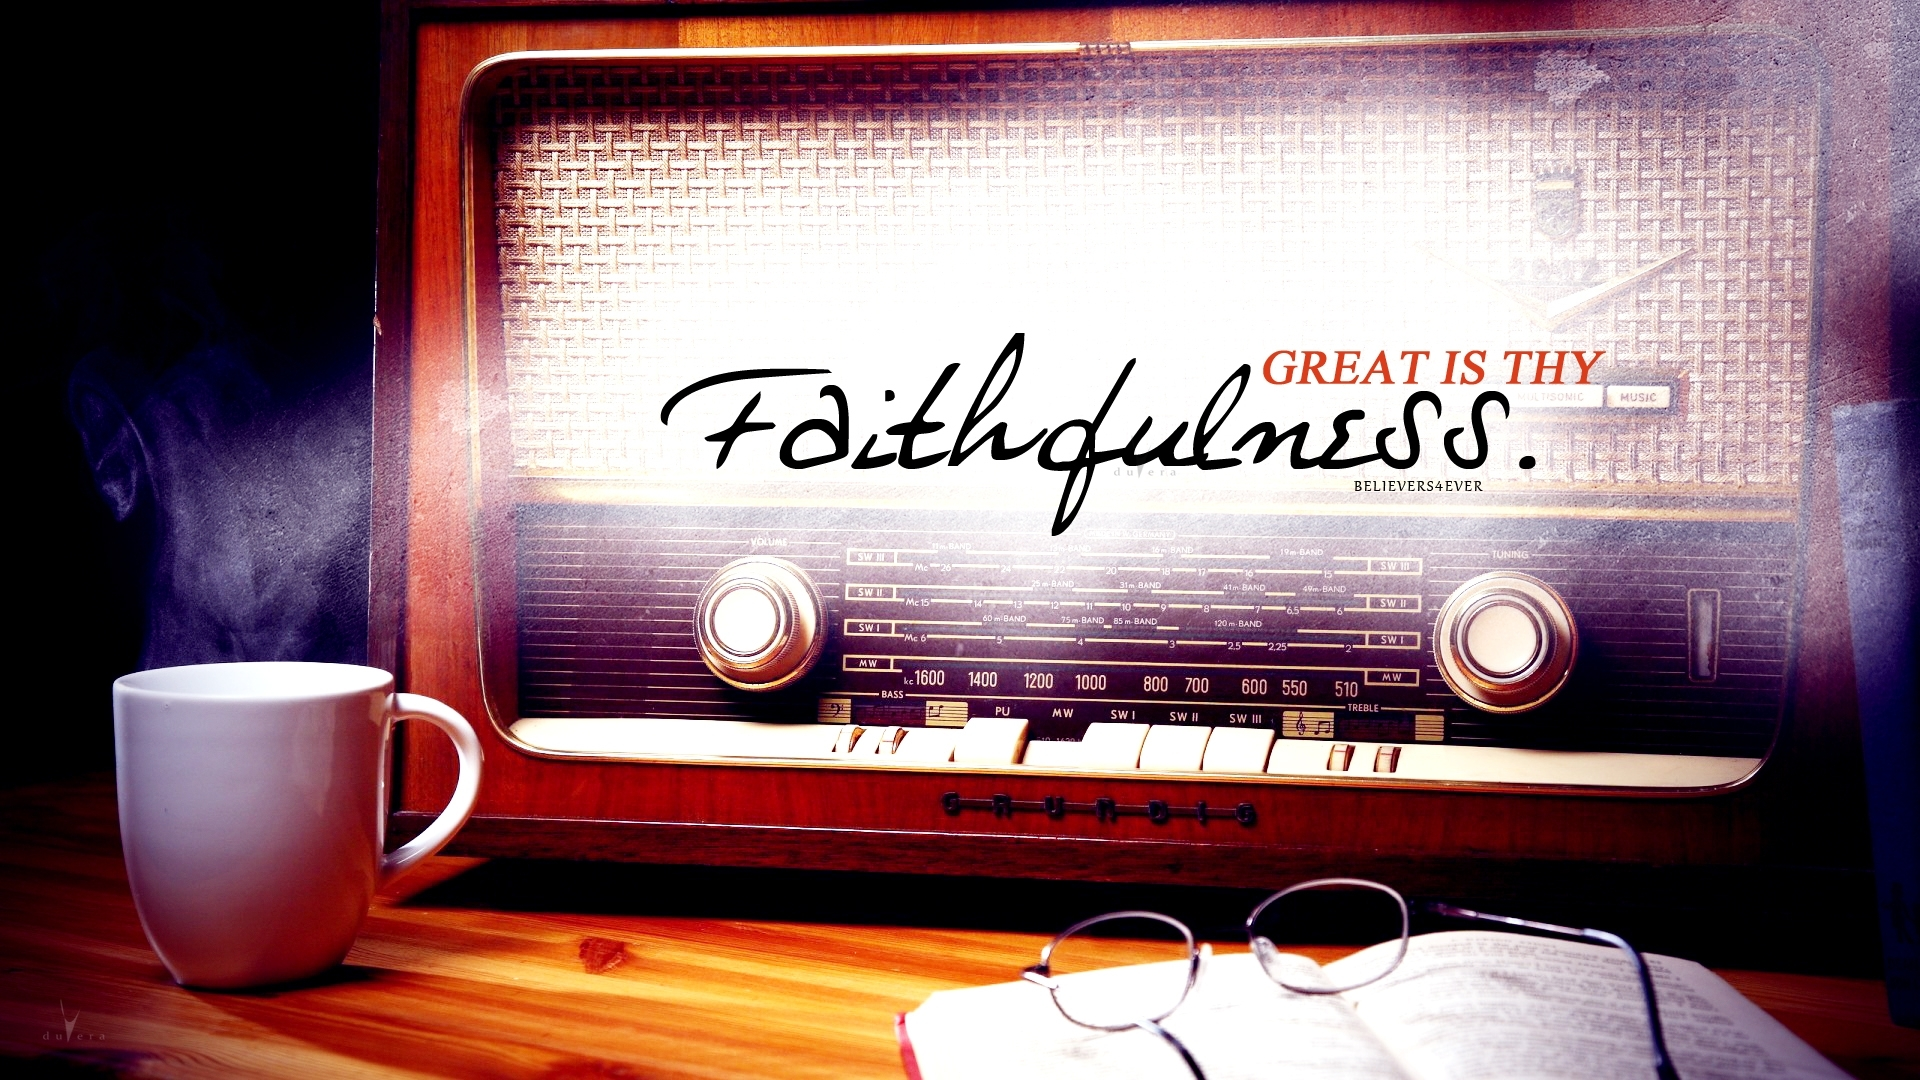 great is thy faithfulness - believers4ever